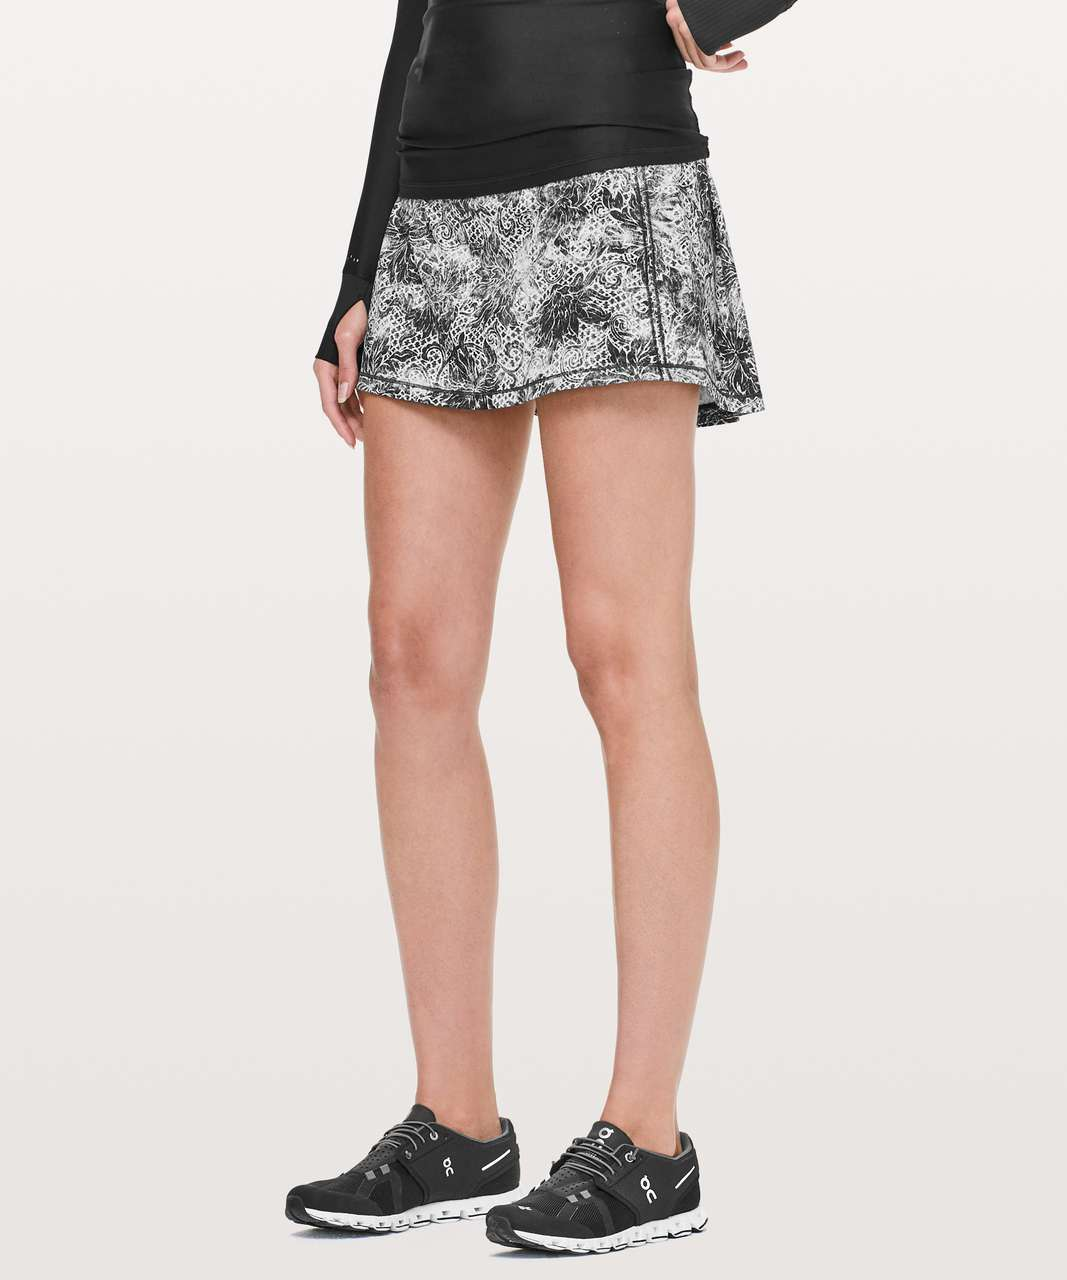 Lululemon Pace Rival Skirt II (Tall) *4-way Stretch - Serigraph Alpine White Black Multi / Black